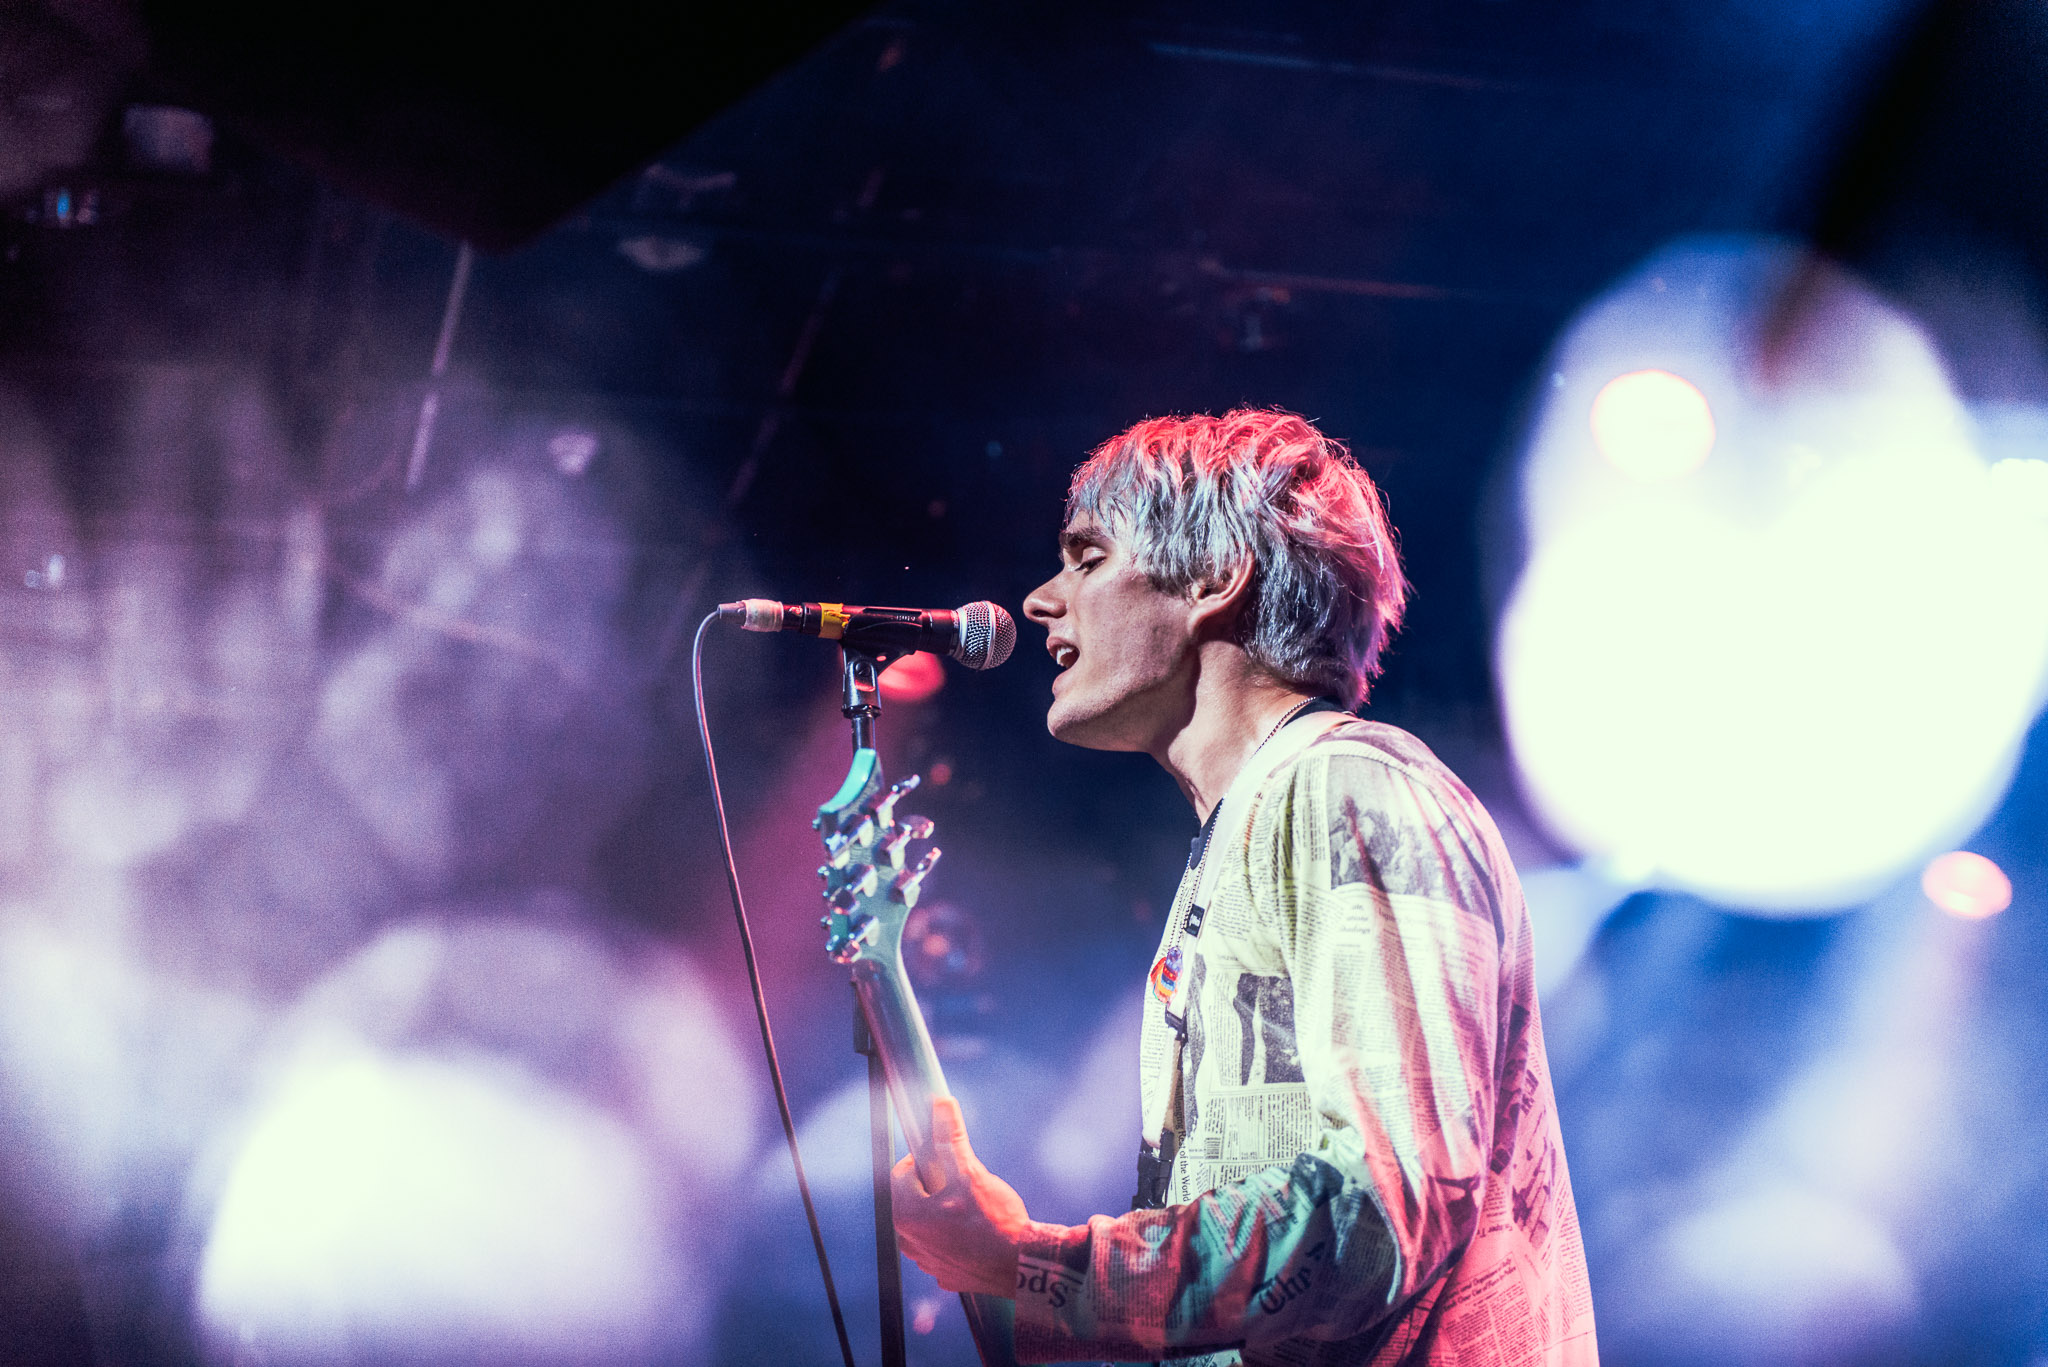 20171002-WATERPARKS-0967- @arnecrdnls.jpg